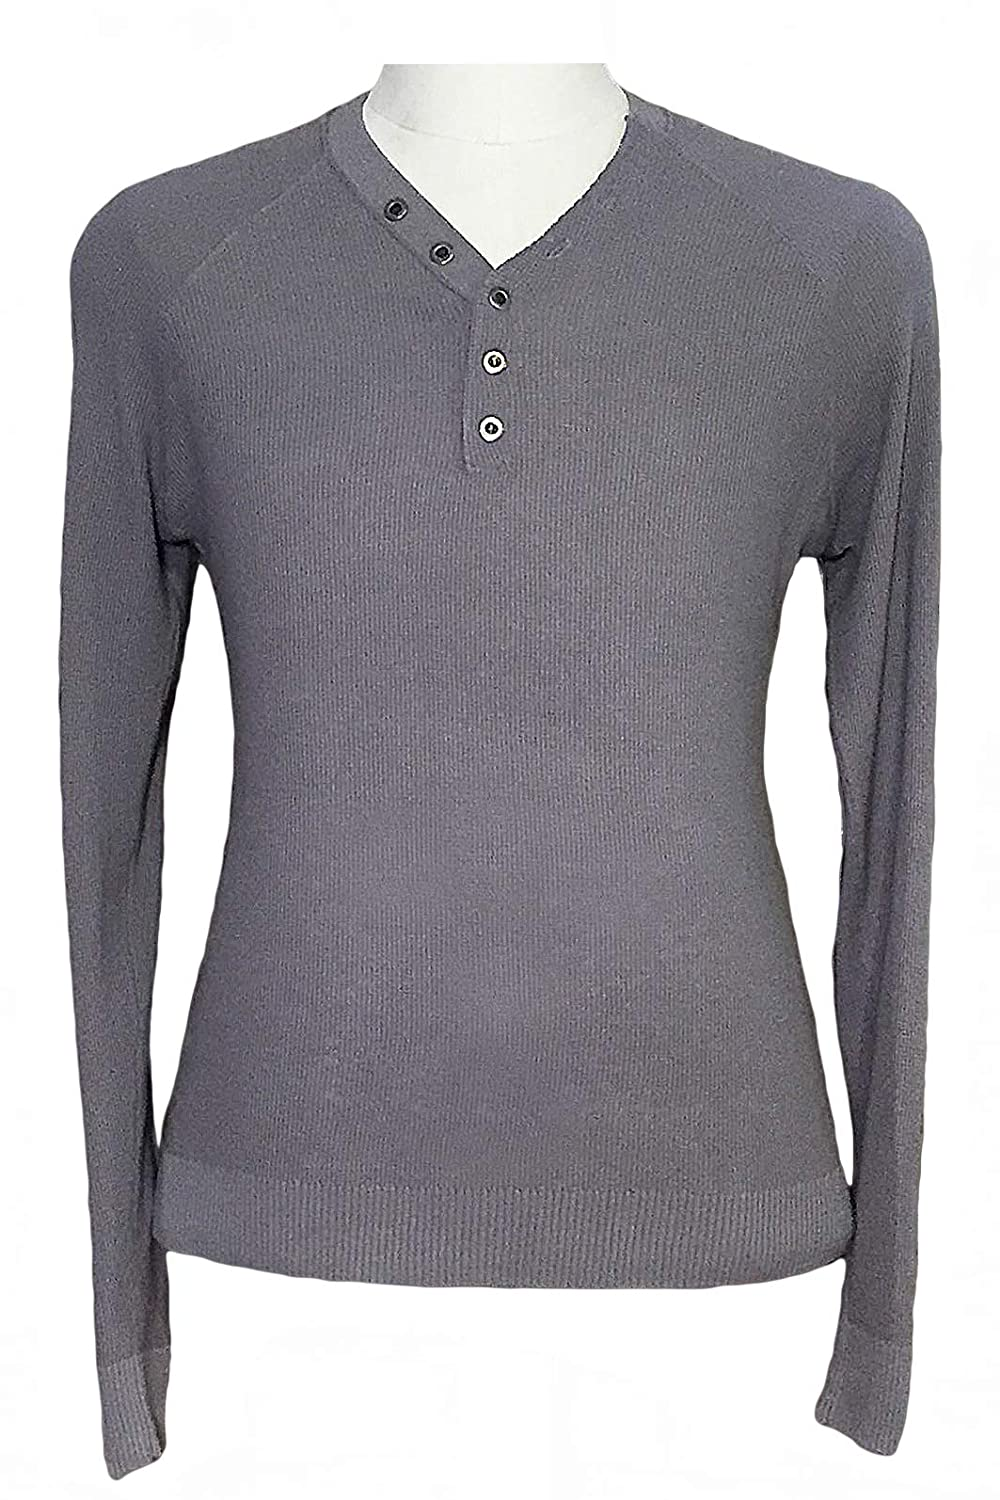 REVOLUTION NOW Mens Thermal Y Neck Henley Pullover Sweater